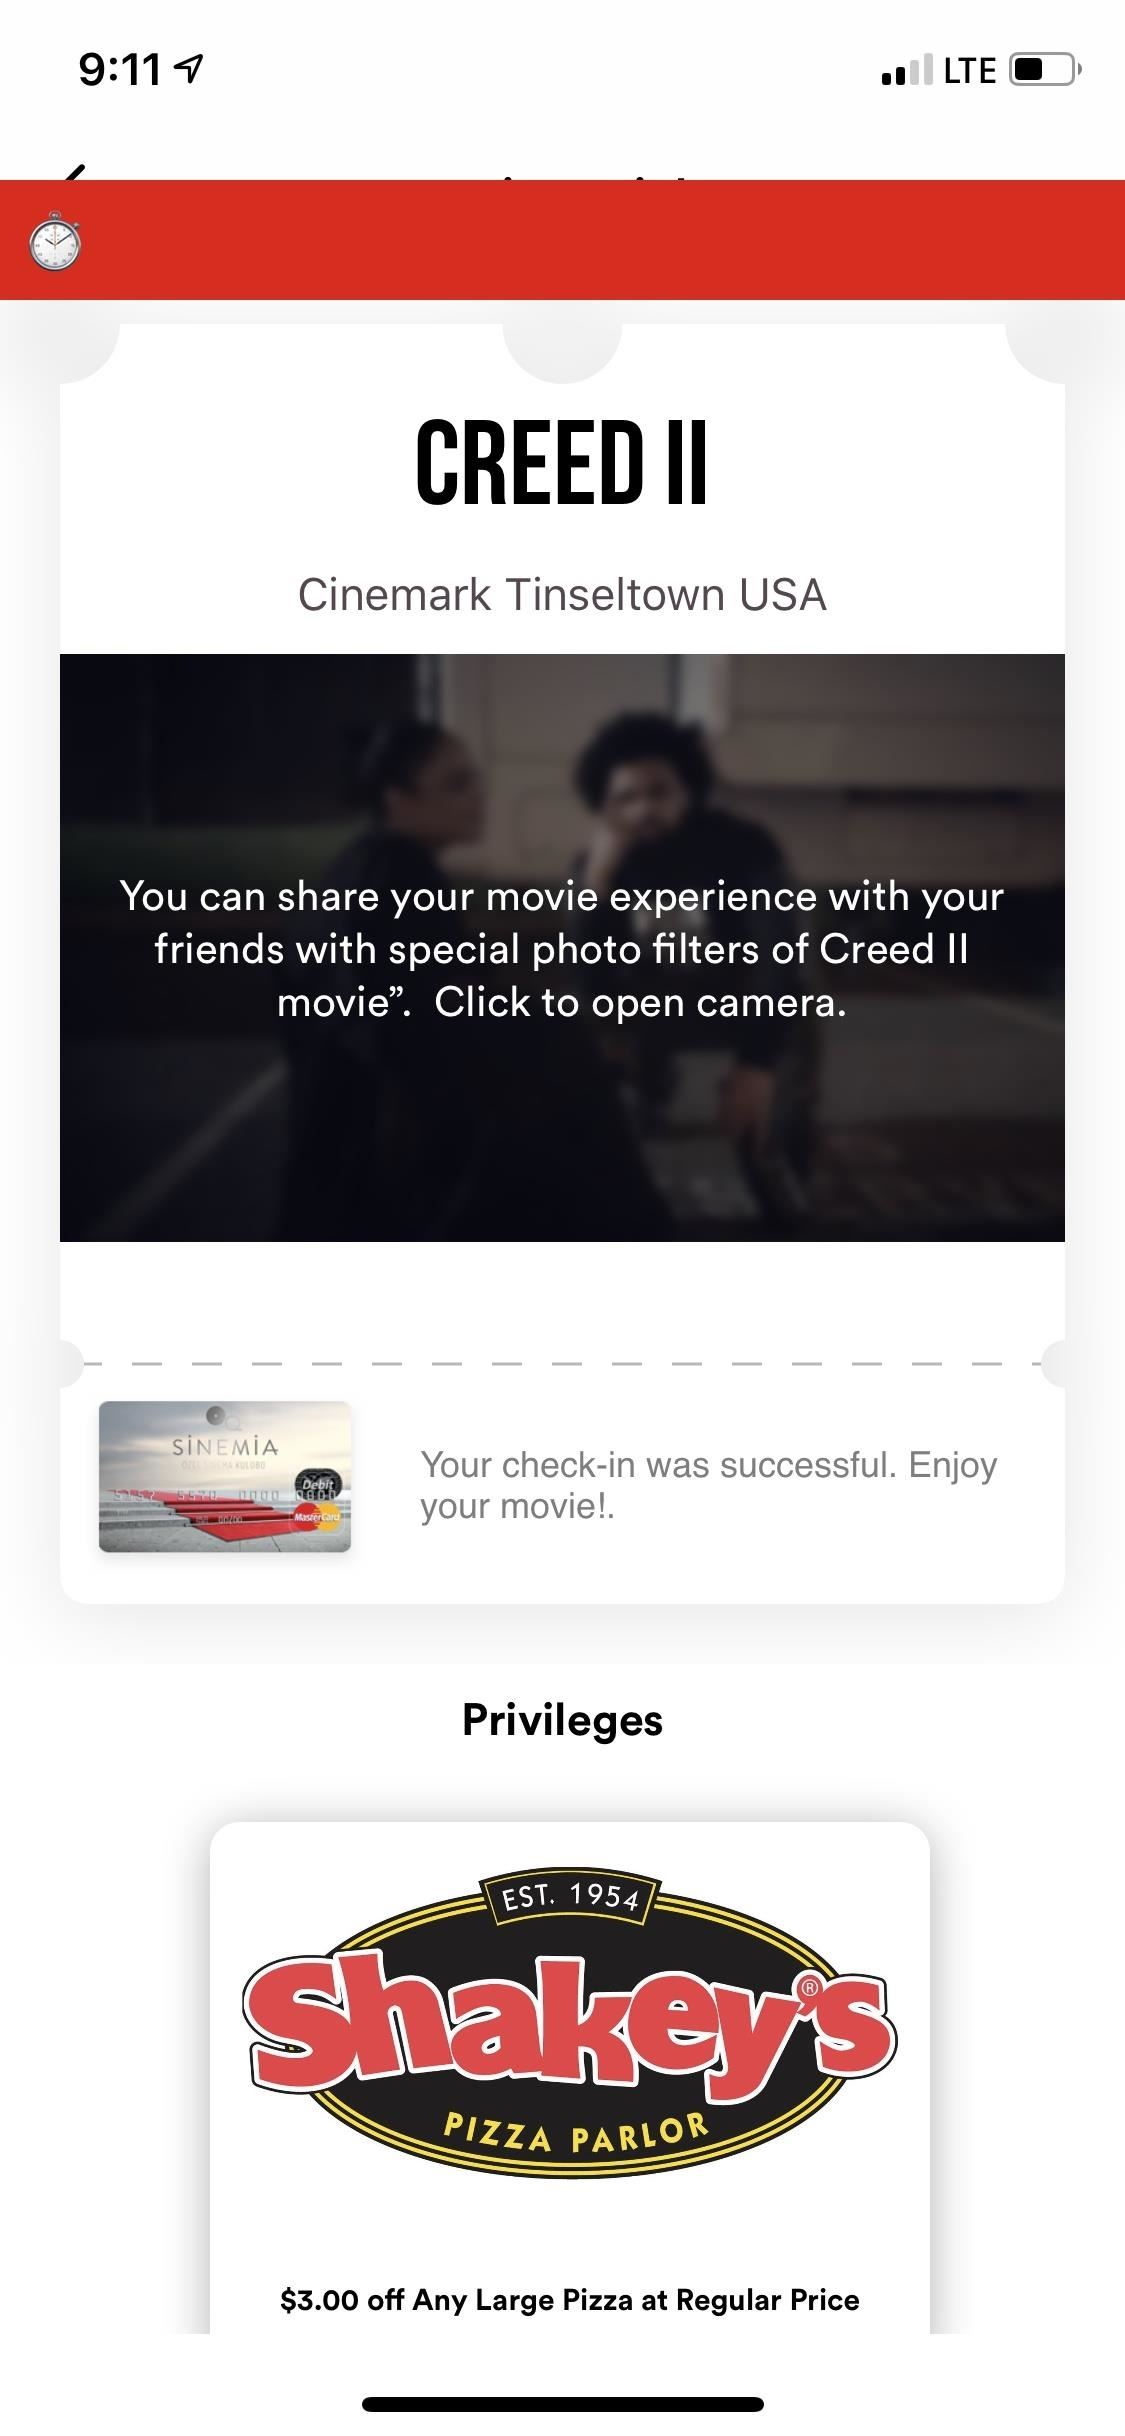 moviepass card activation not working